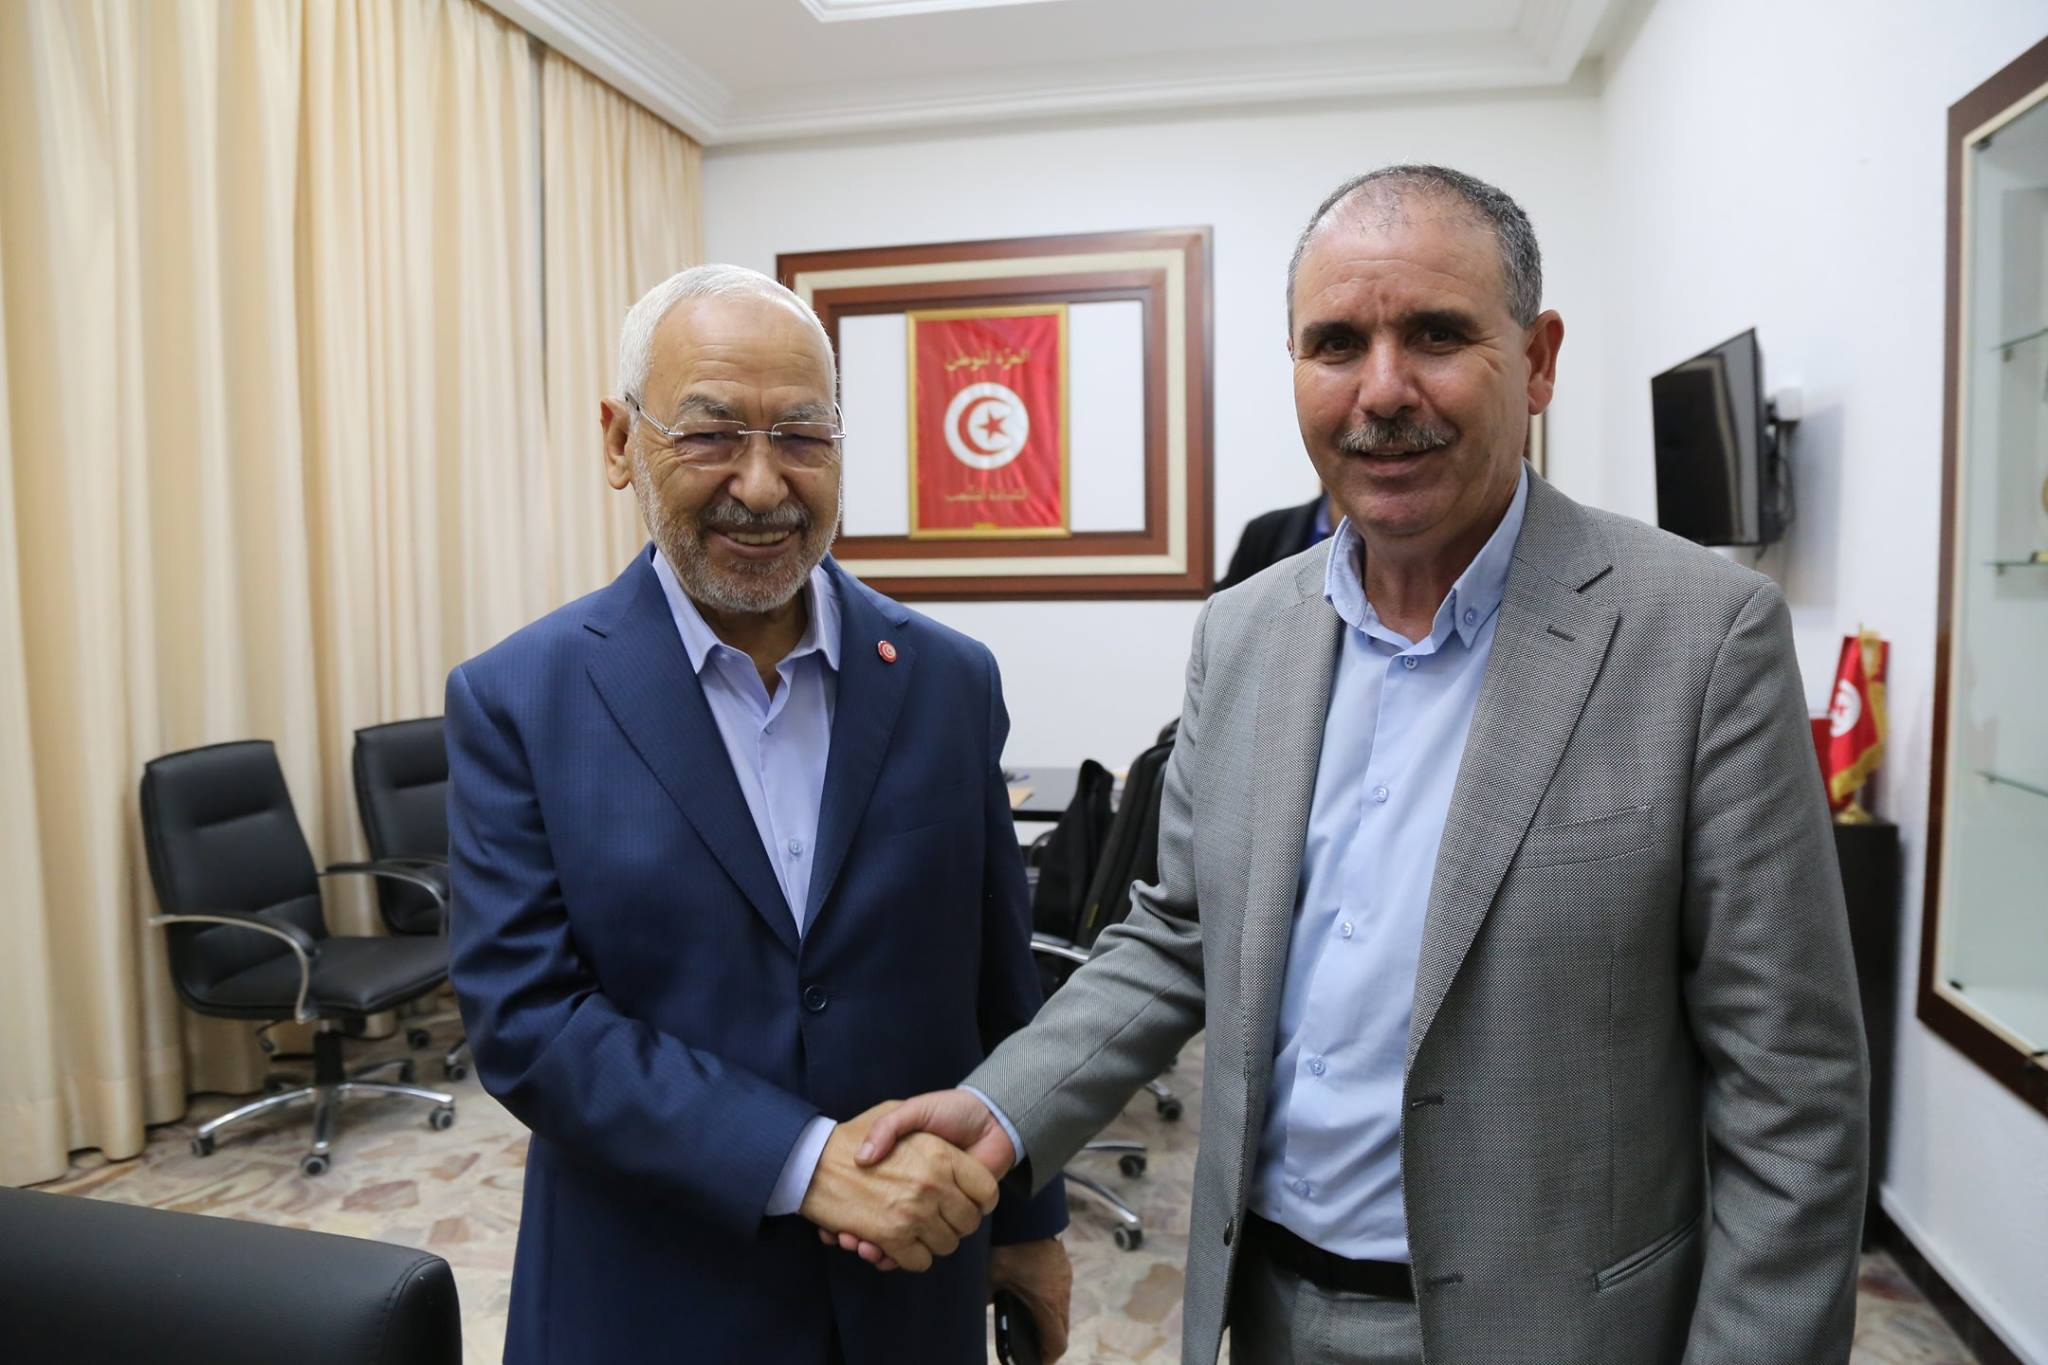 Tunisian General Labour Union (UGTT) and Ennahdha Party – A Rapprochement on the Horizon